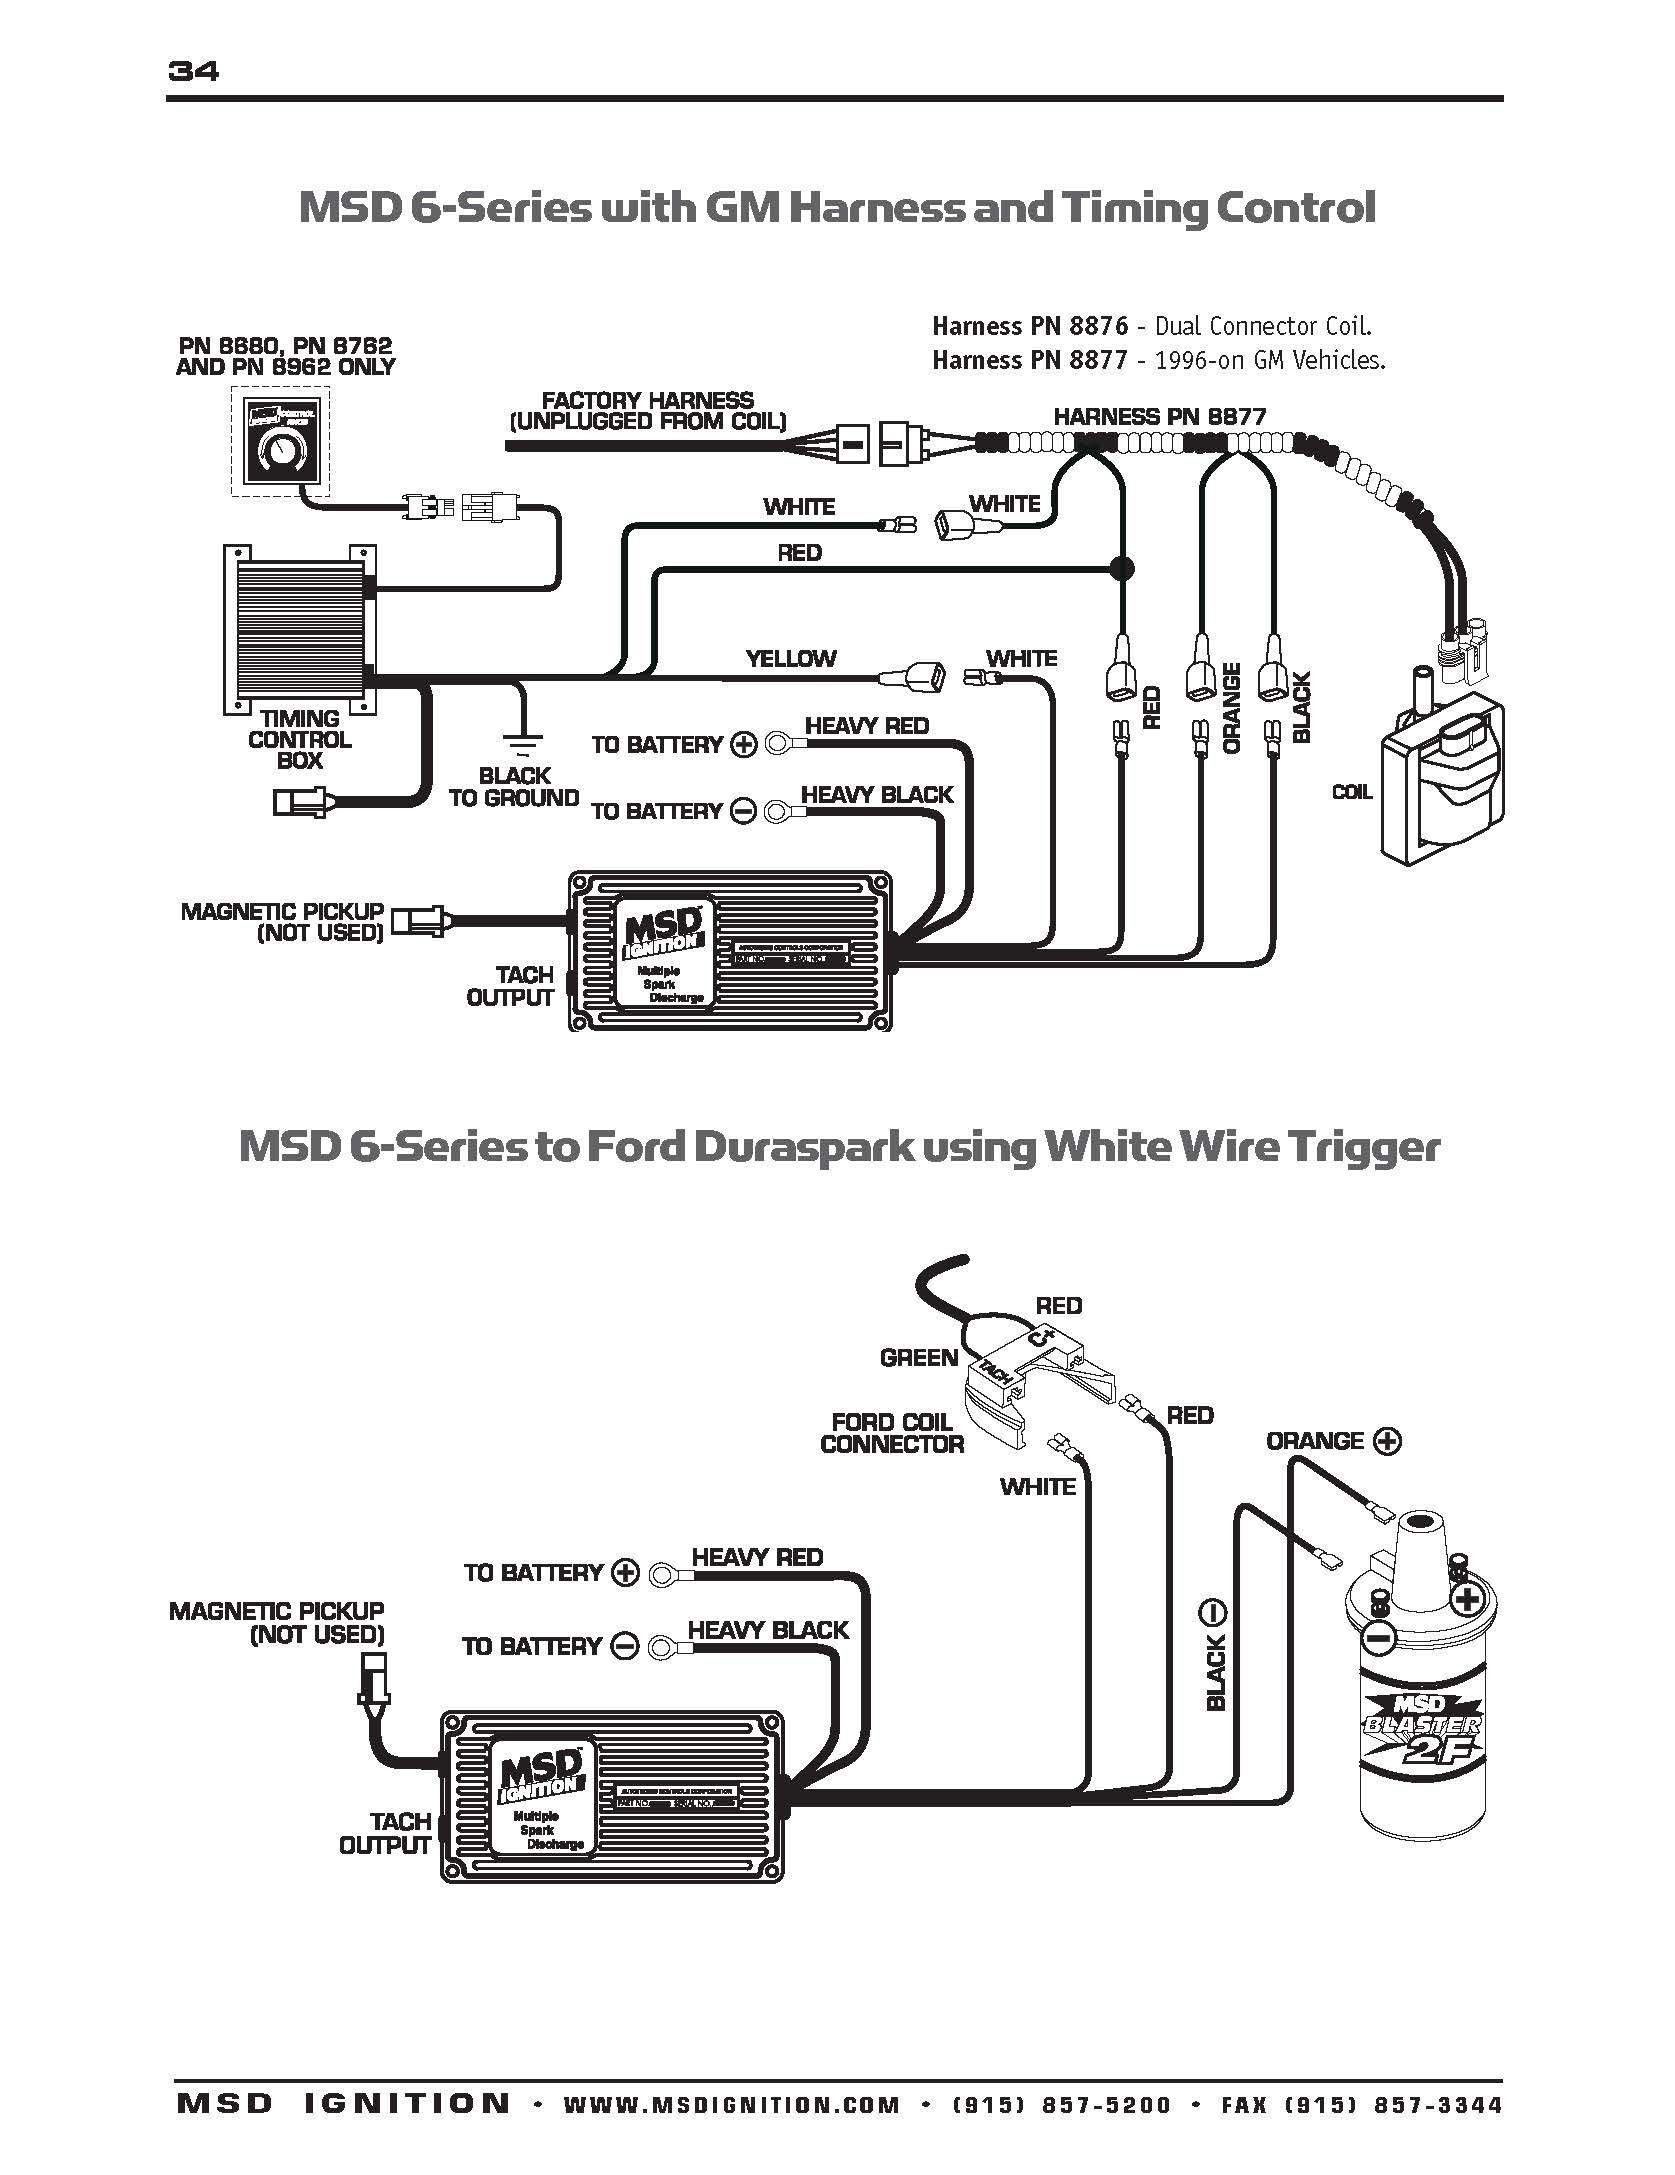 gm hei distributor wiring diagram lovely chevy ford ignition coil ofgm hei distributor wiring diagram lovely [ 1675 x 2175 Pixel ]